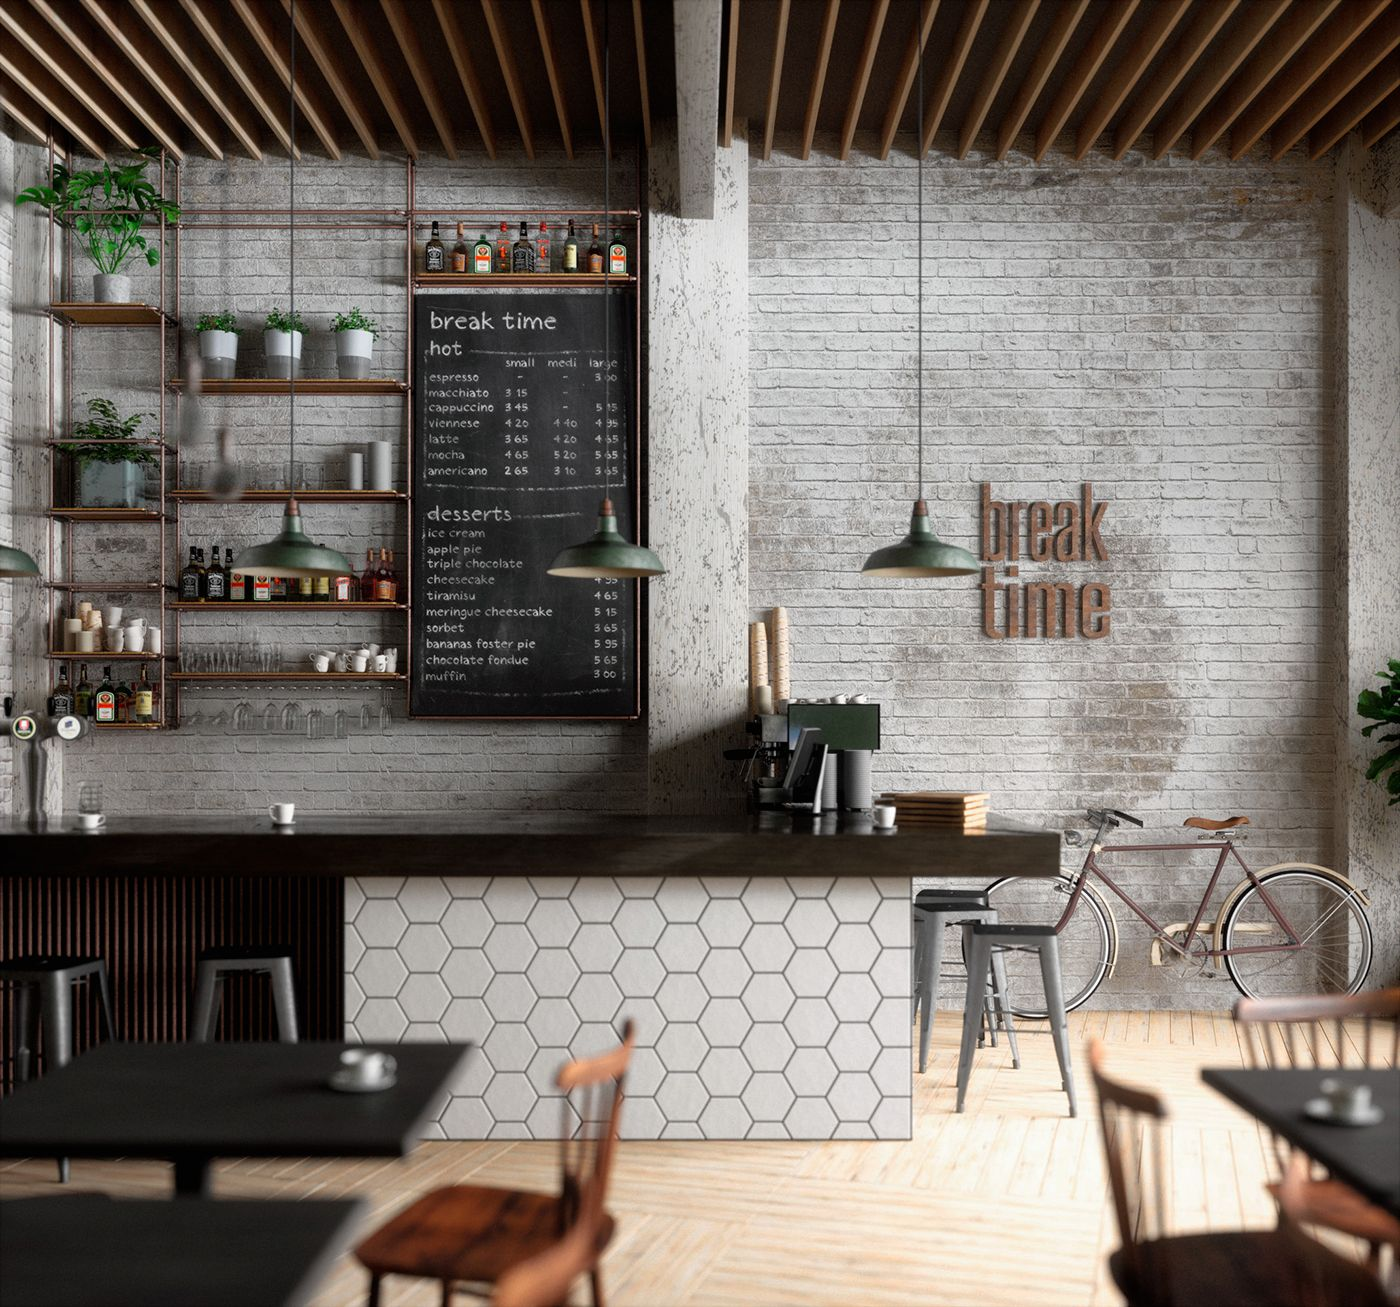 70 Coolest Coffee Shop Design Ideas: Break Time Coffee On Behance